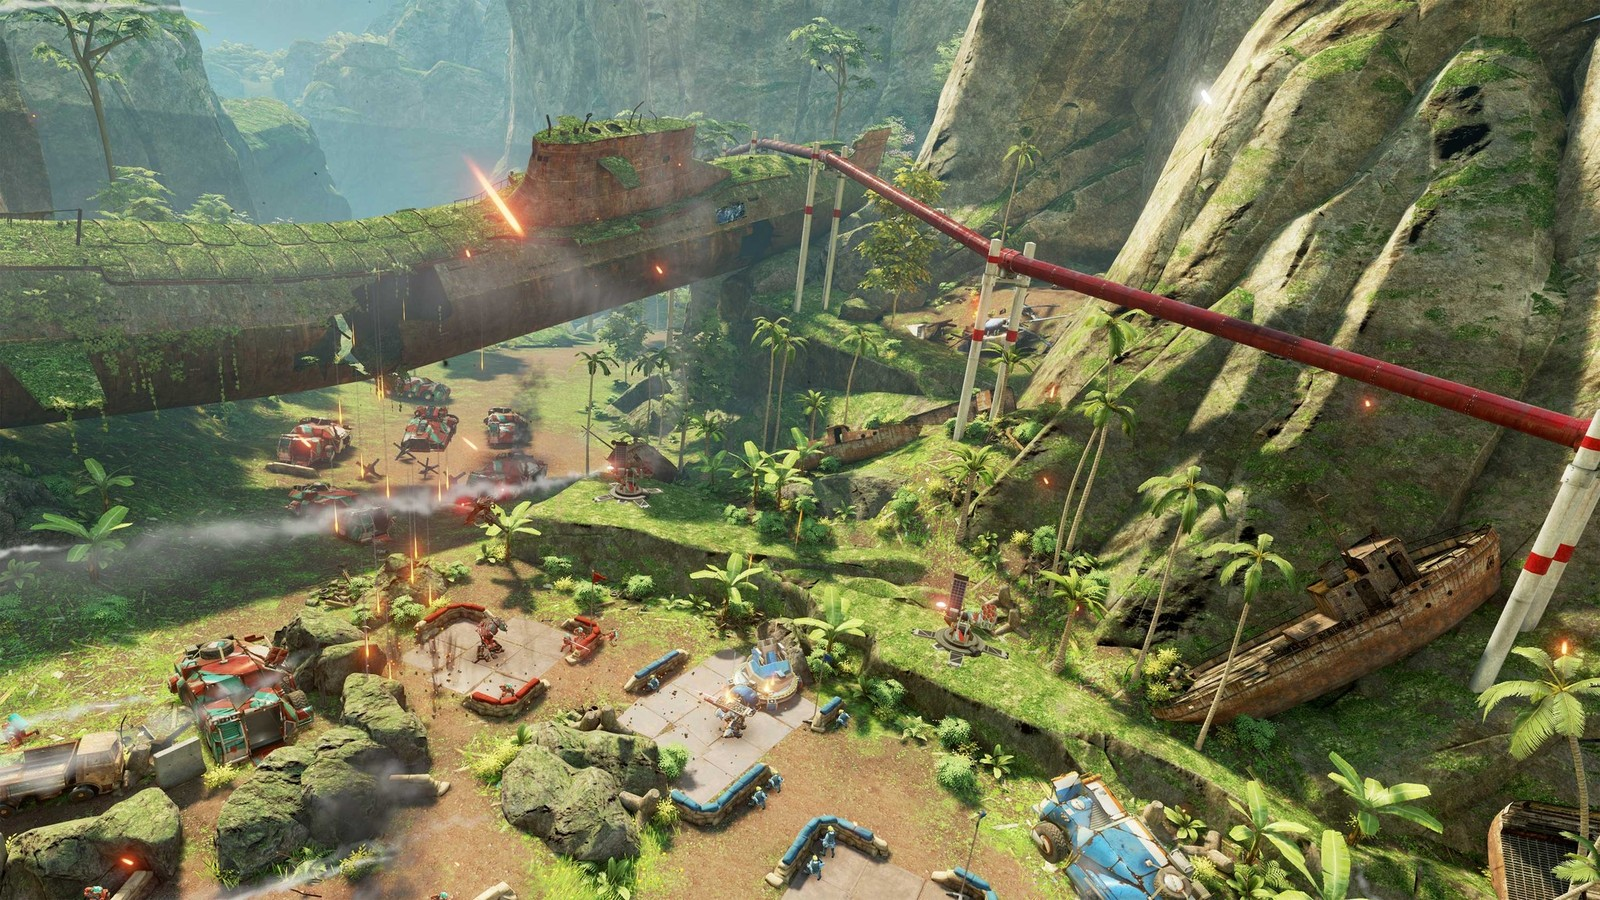 Landfall review: RTS meets shooter in this beautiful Rift title